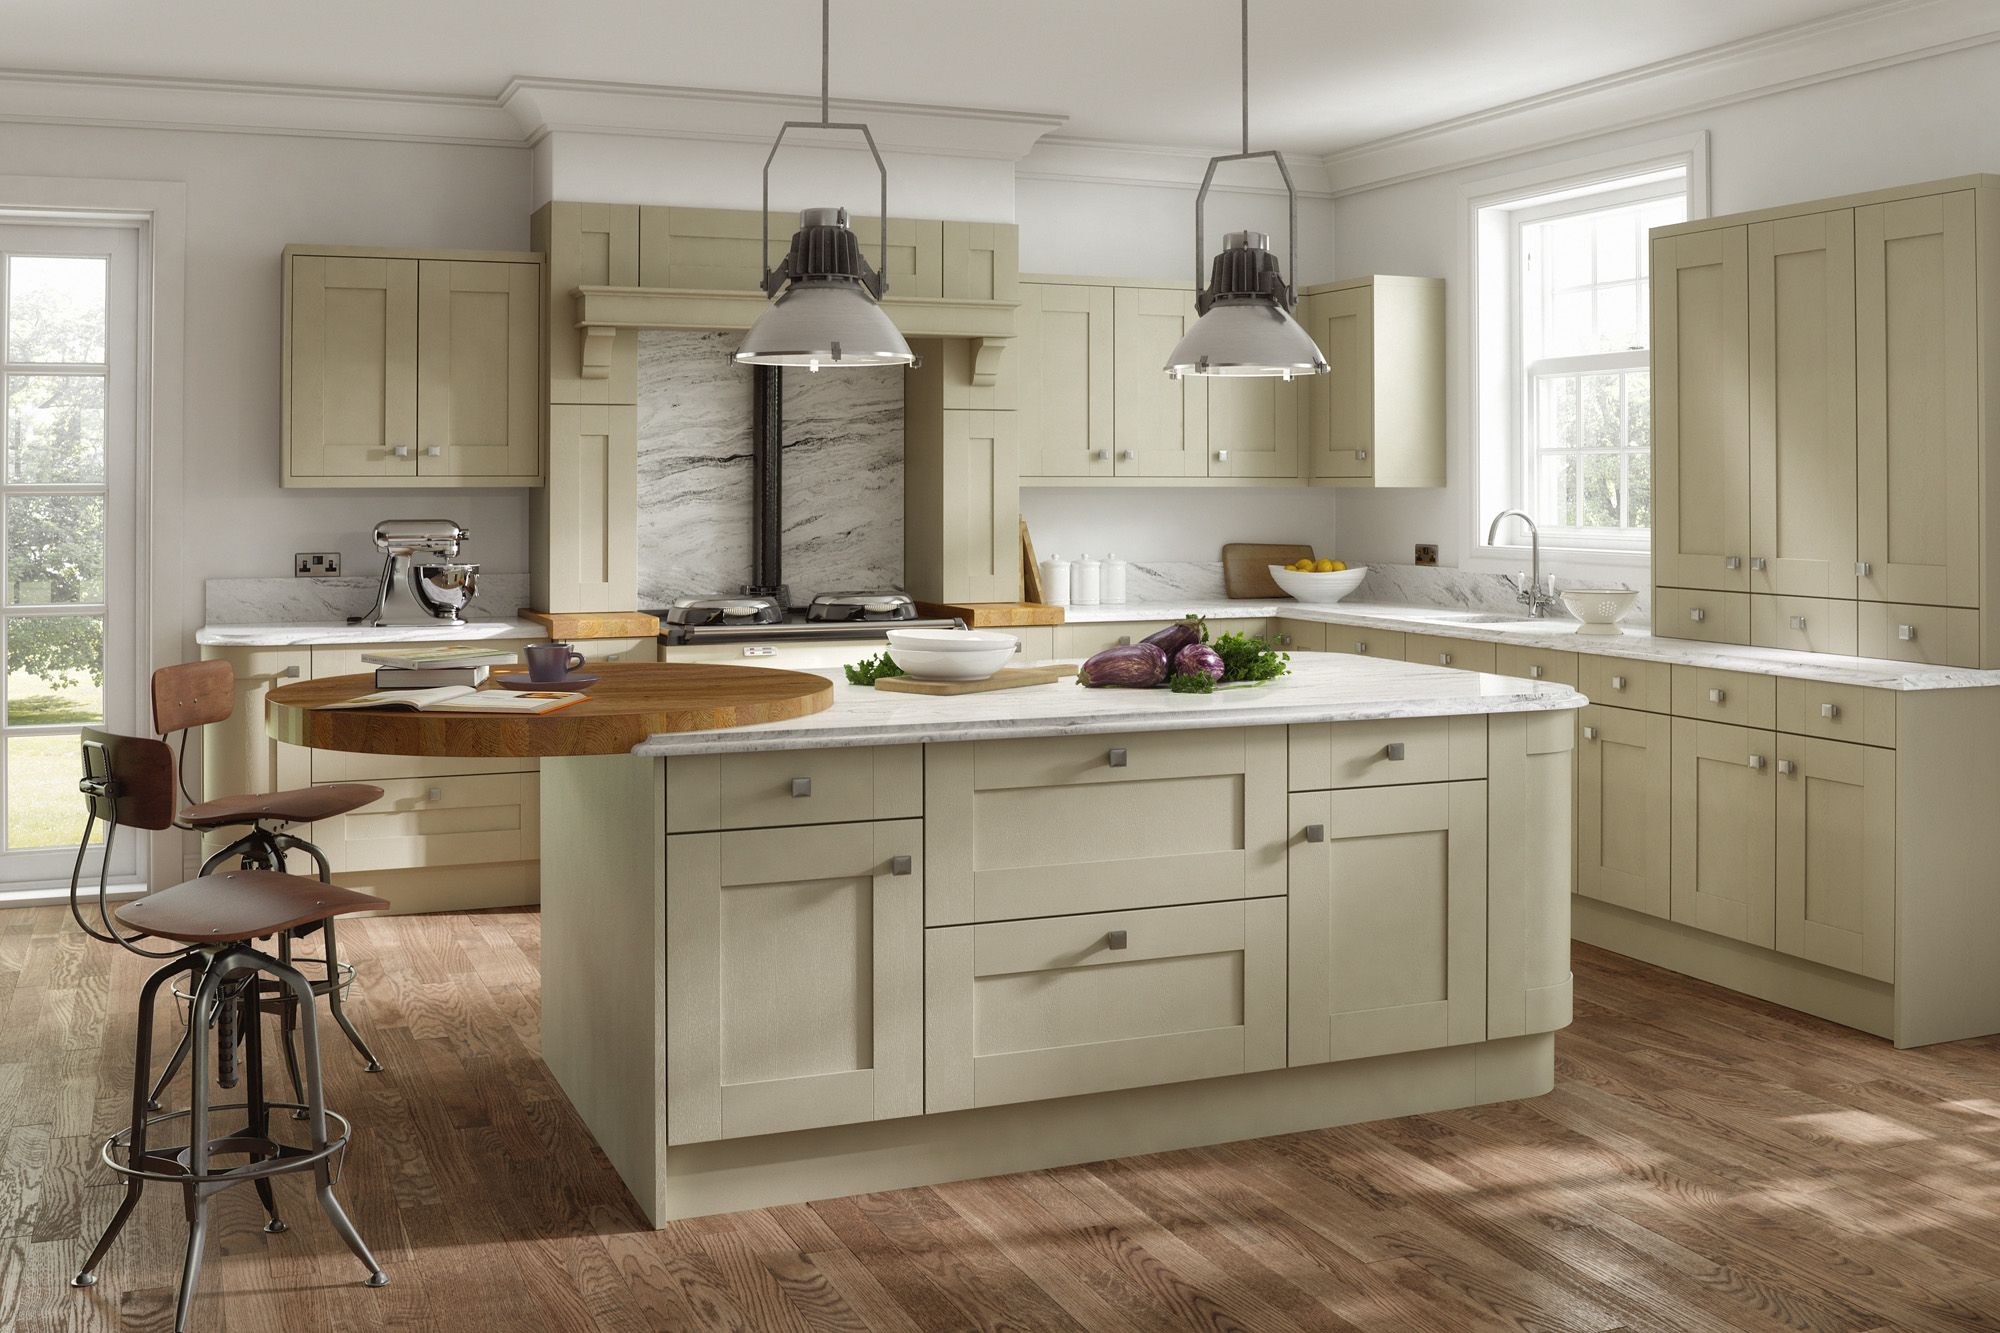 A Traditional Style Kitchen With Quadro Doors In The Colour